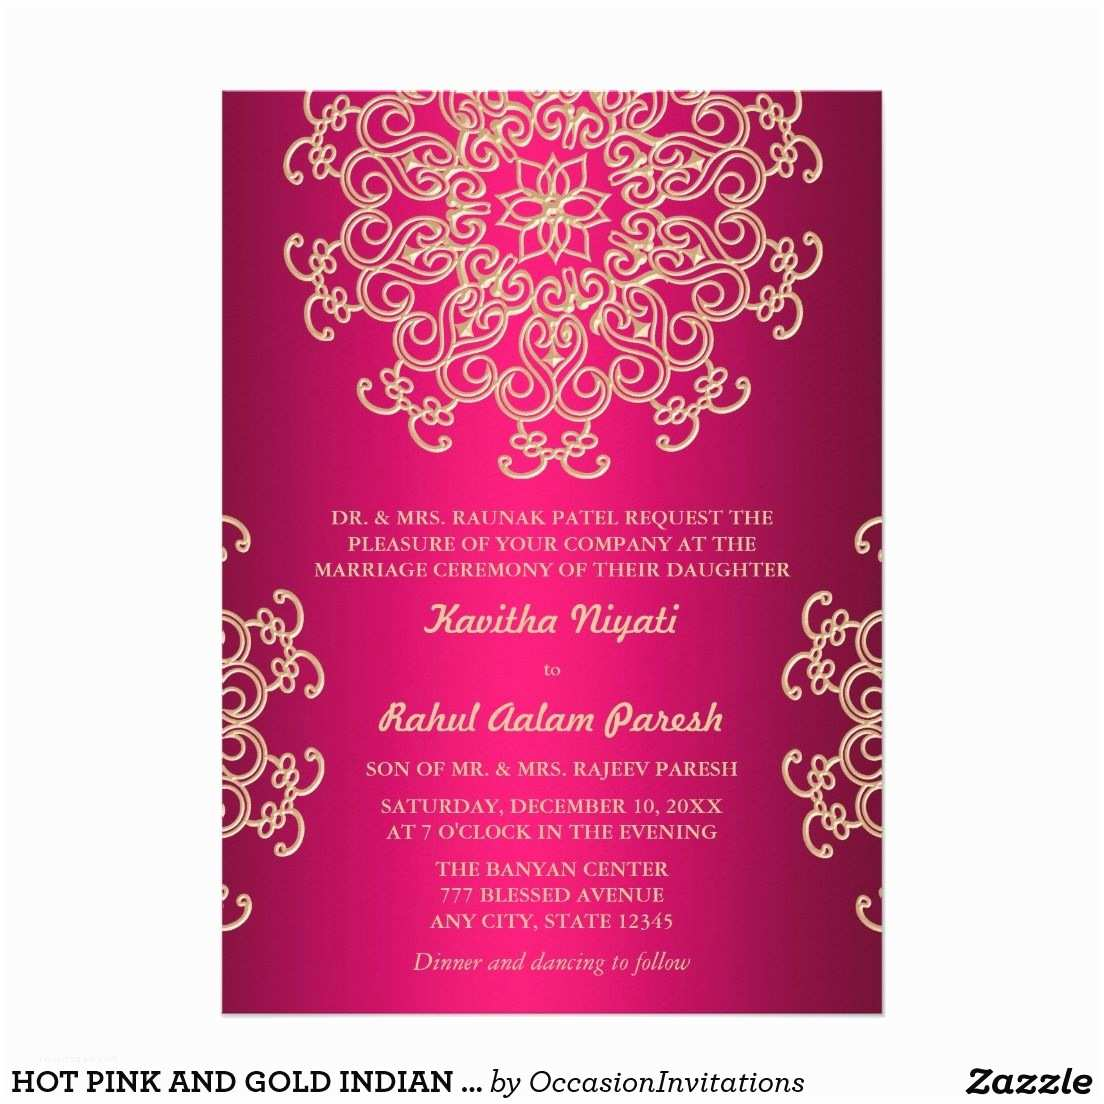 Wedding Invitation for Indian Wedding Hot Pink and Gold Indian Style Wedding Invitation